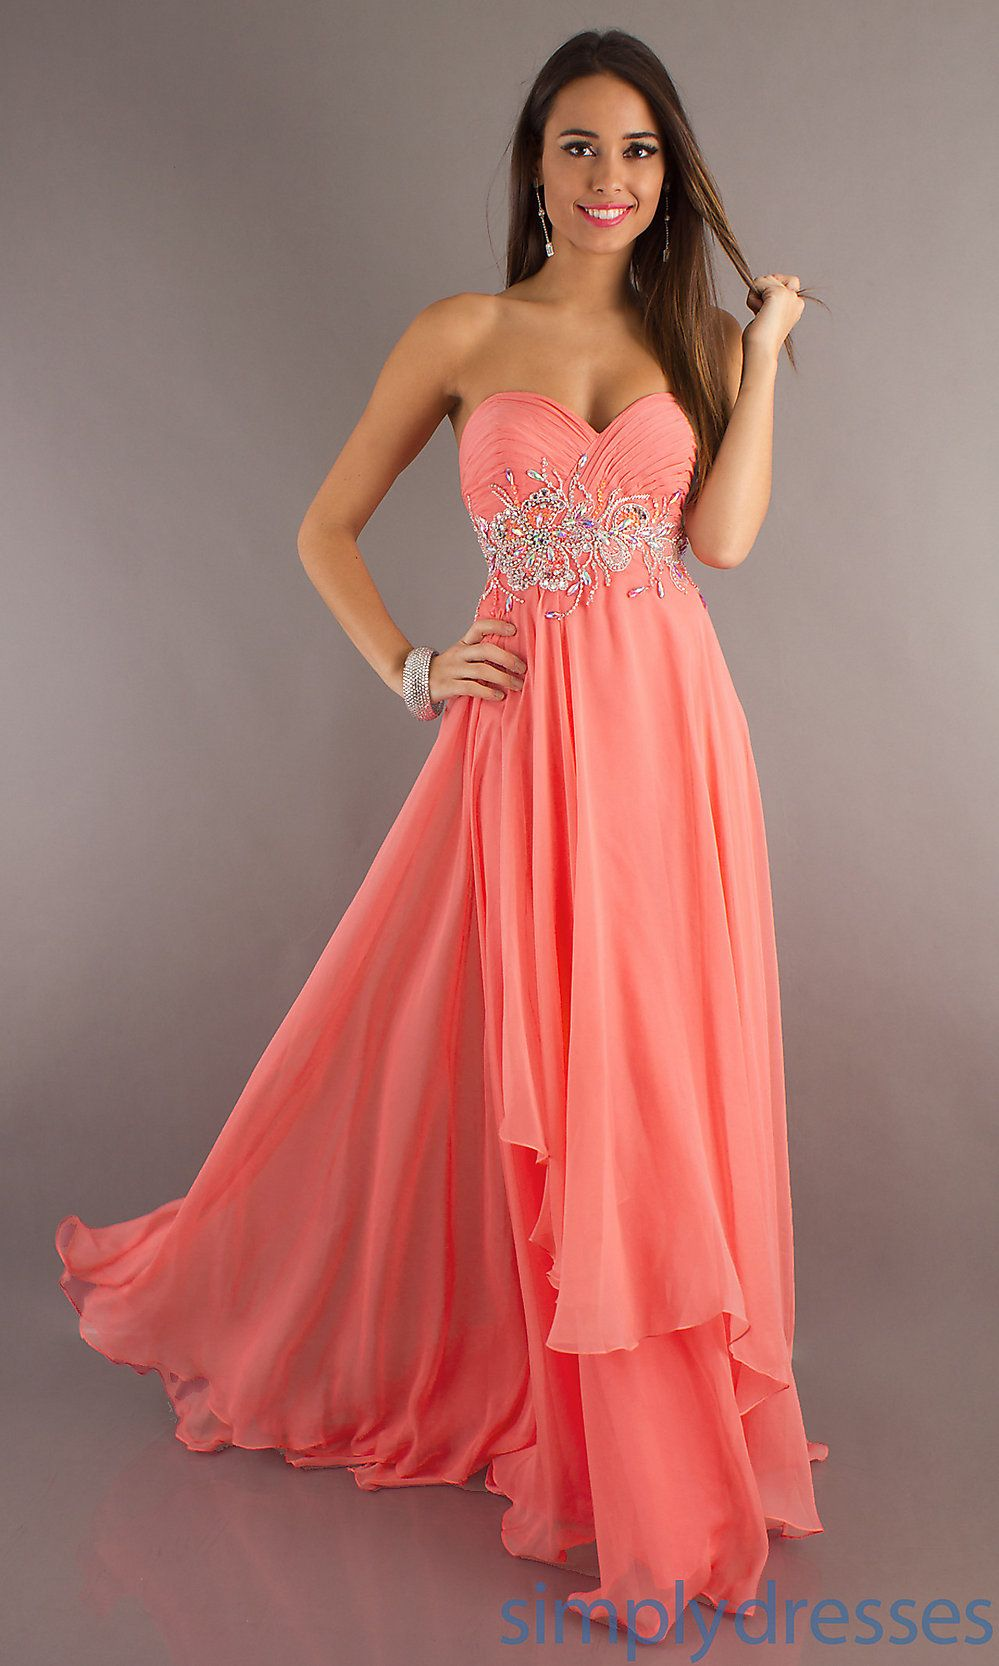 Peach Colored Prom Dresses